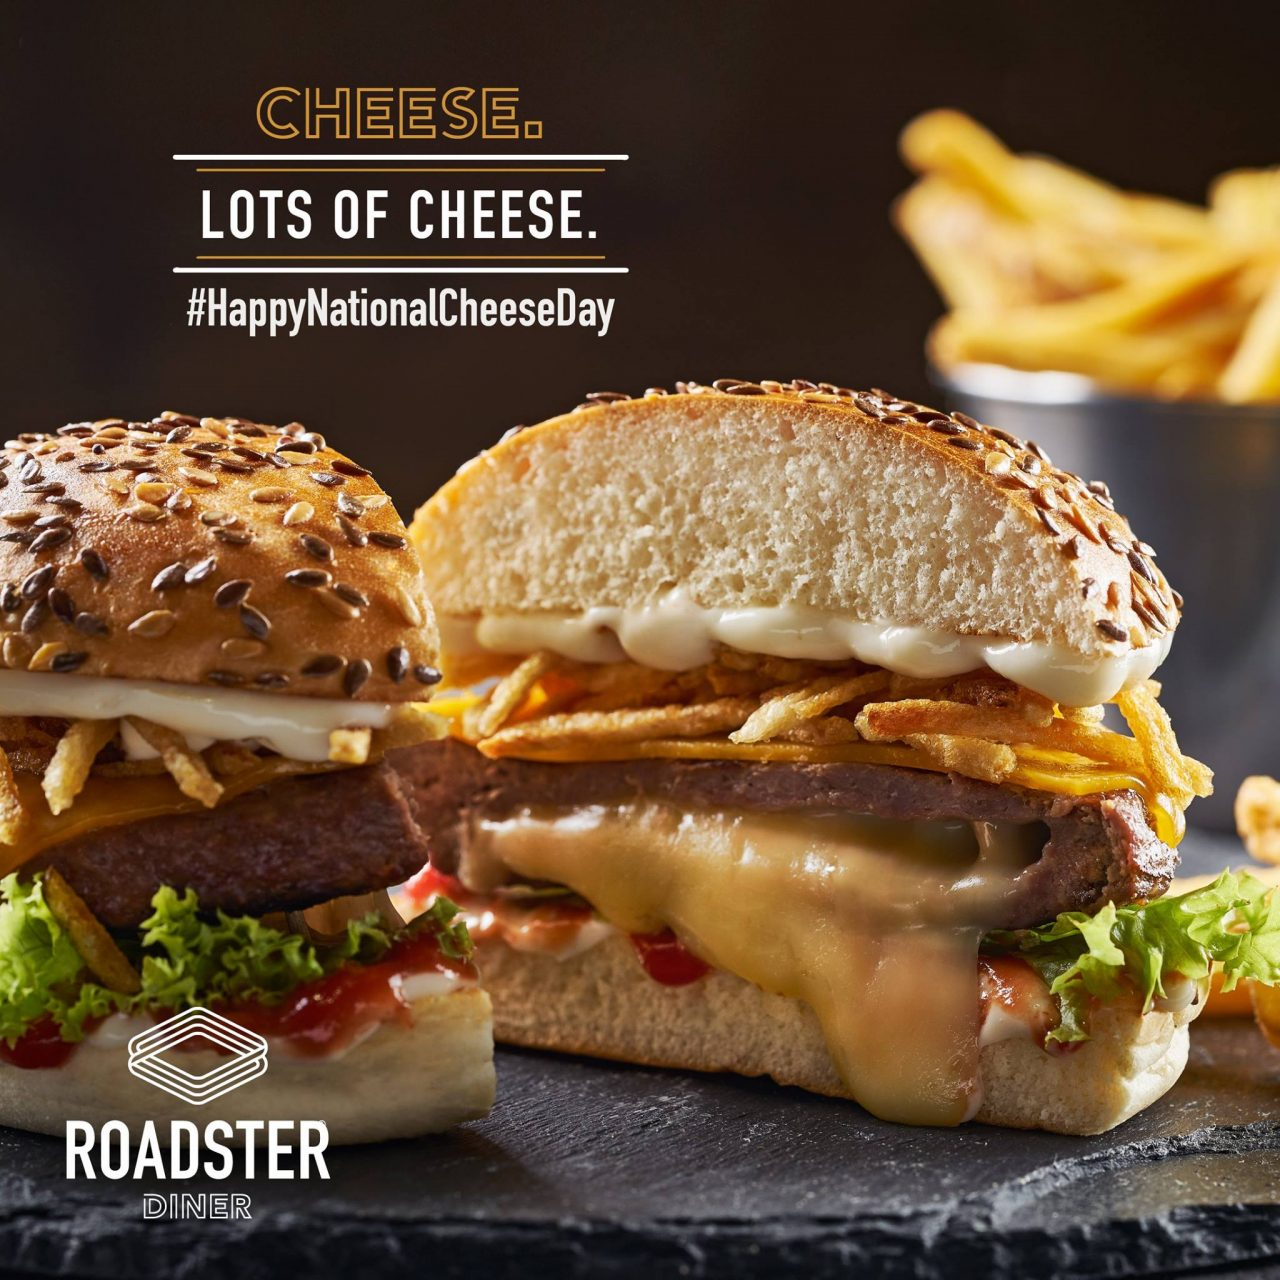 Roadster diner burger food styling by Butter & Basil